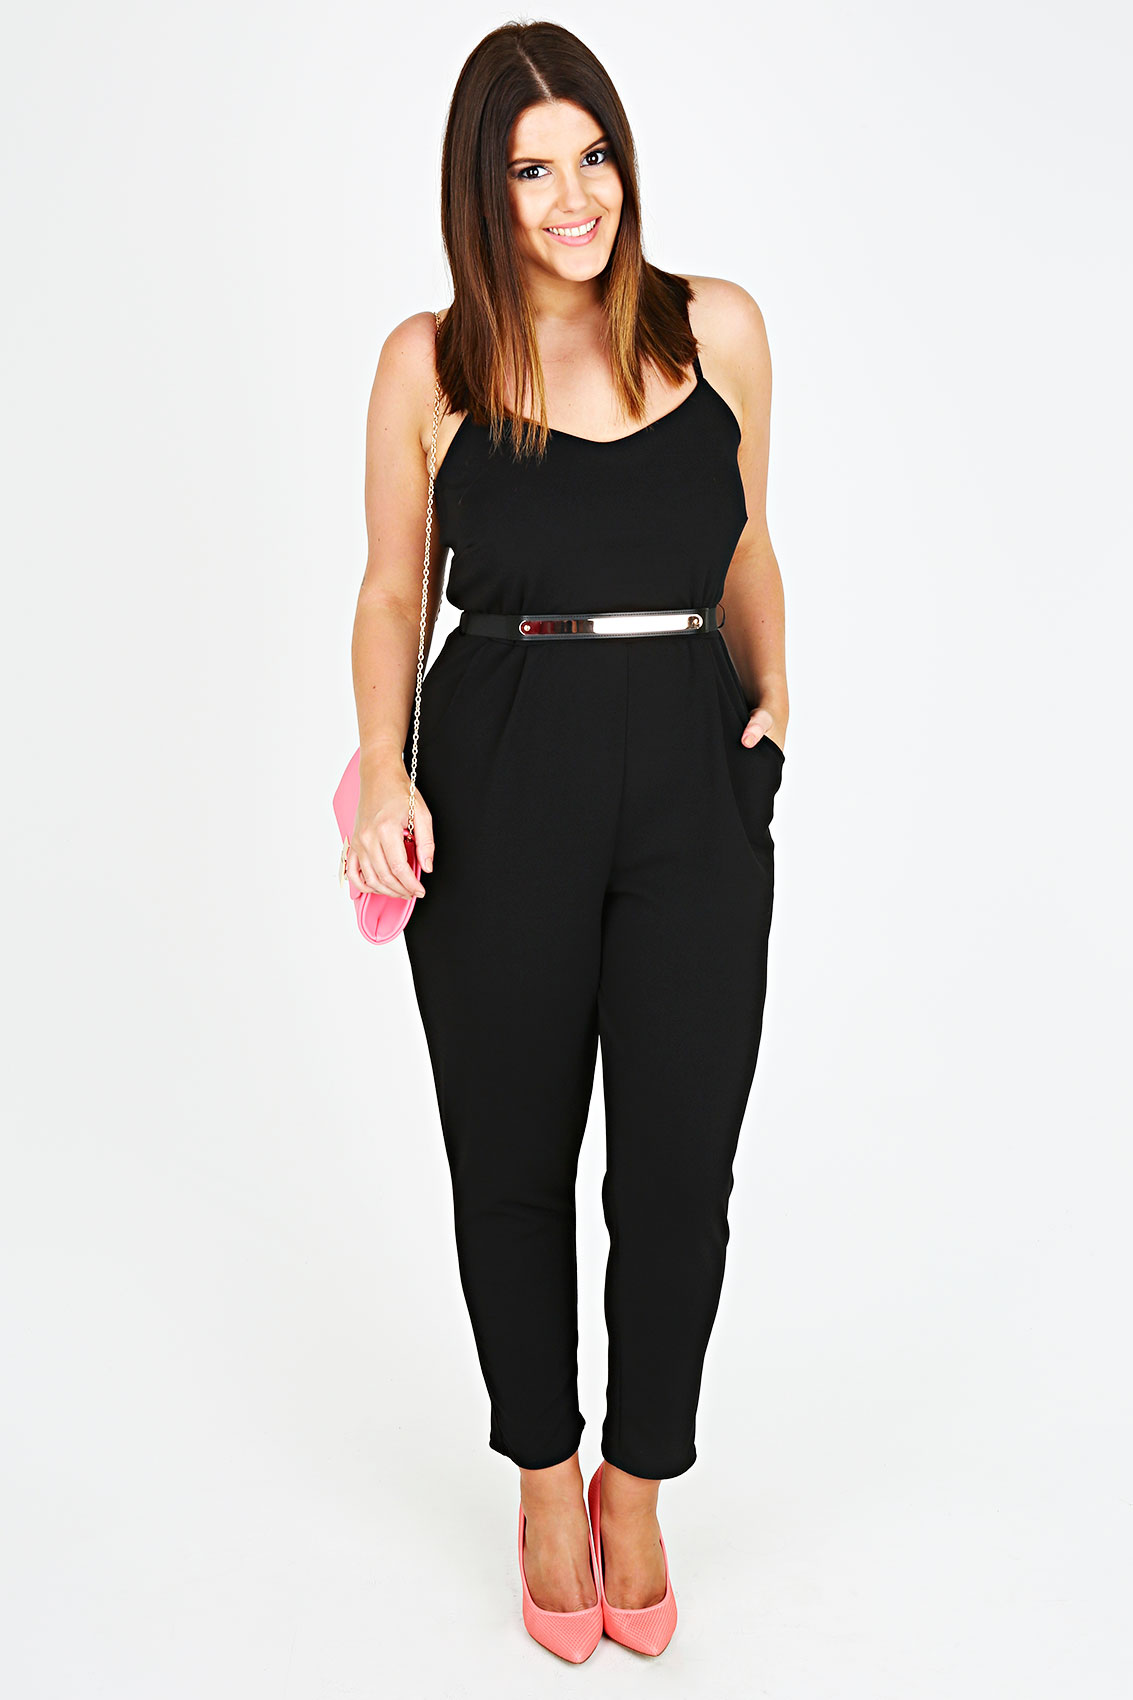 Jumpsuits & Rompers Flaunt your shape in sizes Expand your day to day and occasionwear options with our super sleek figure flattering range of women's jumpsuits and rompers.